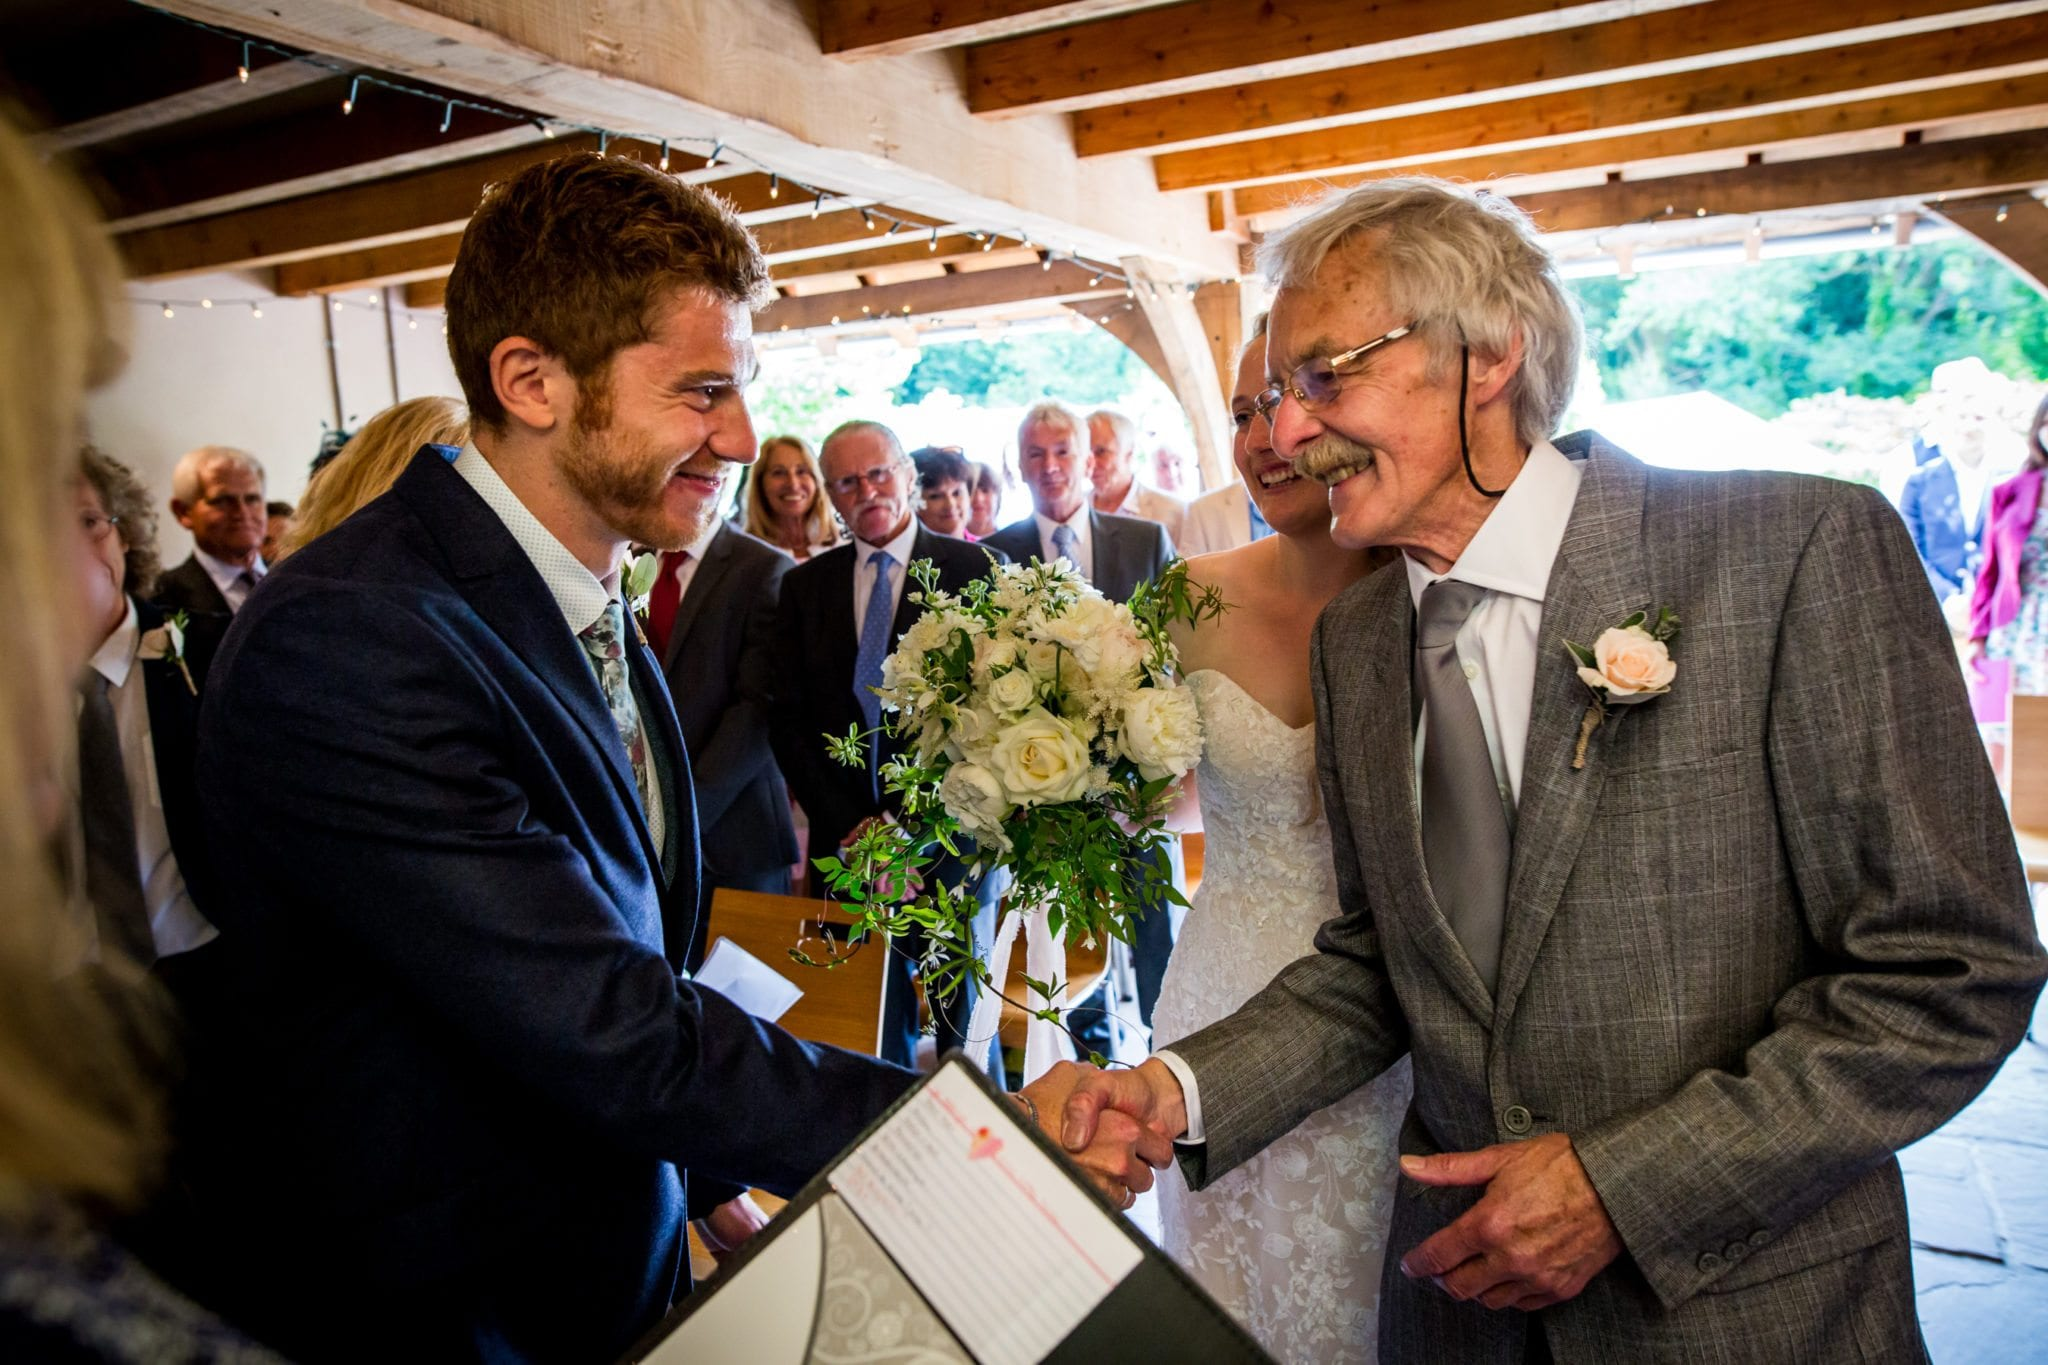 Father and groom handshake on the aisle